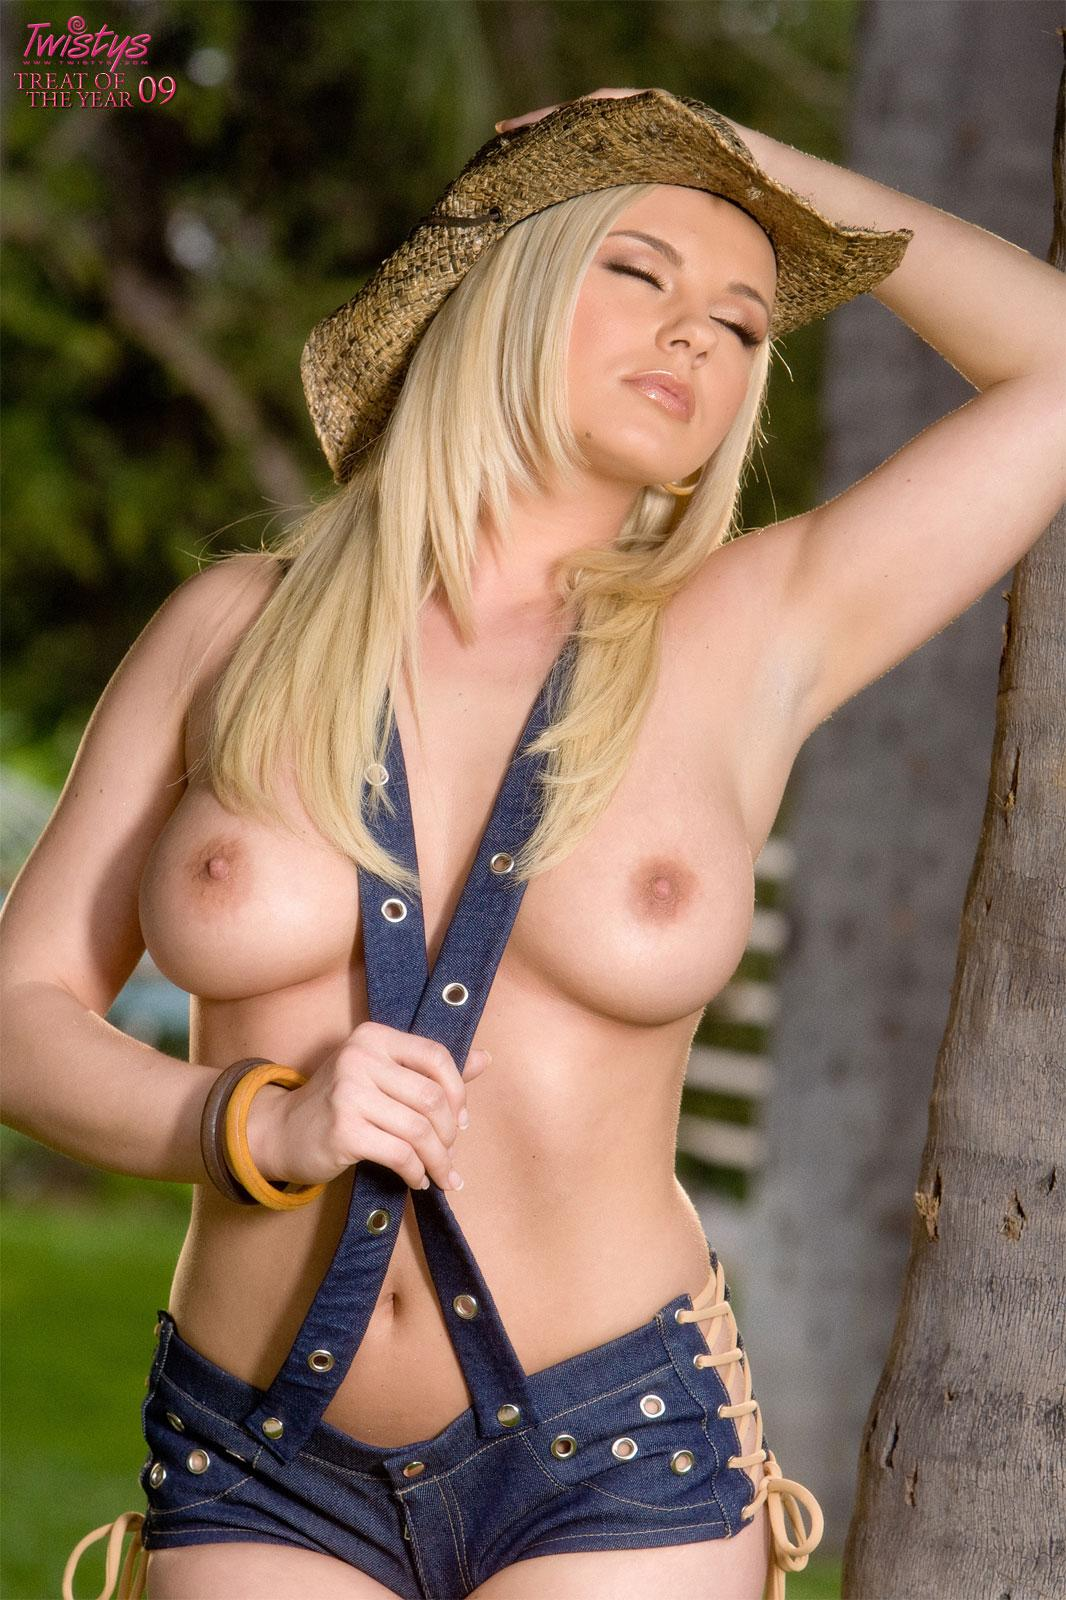 Bree olson twistys treat of the year